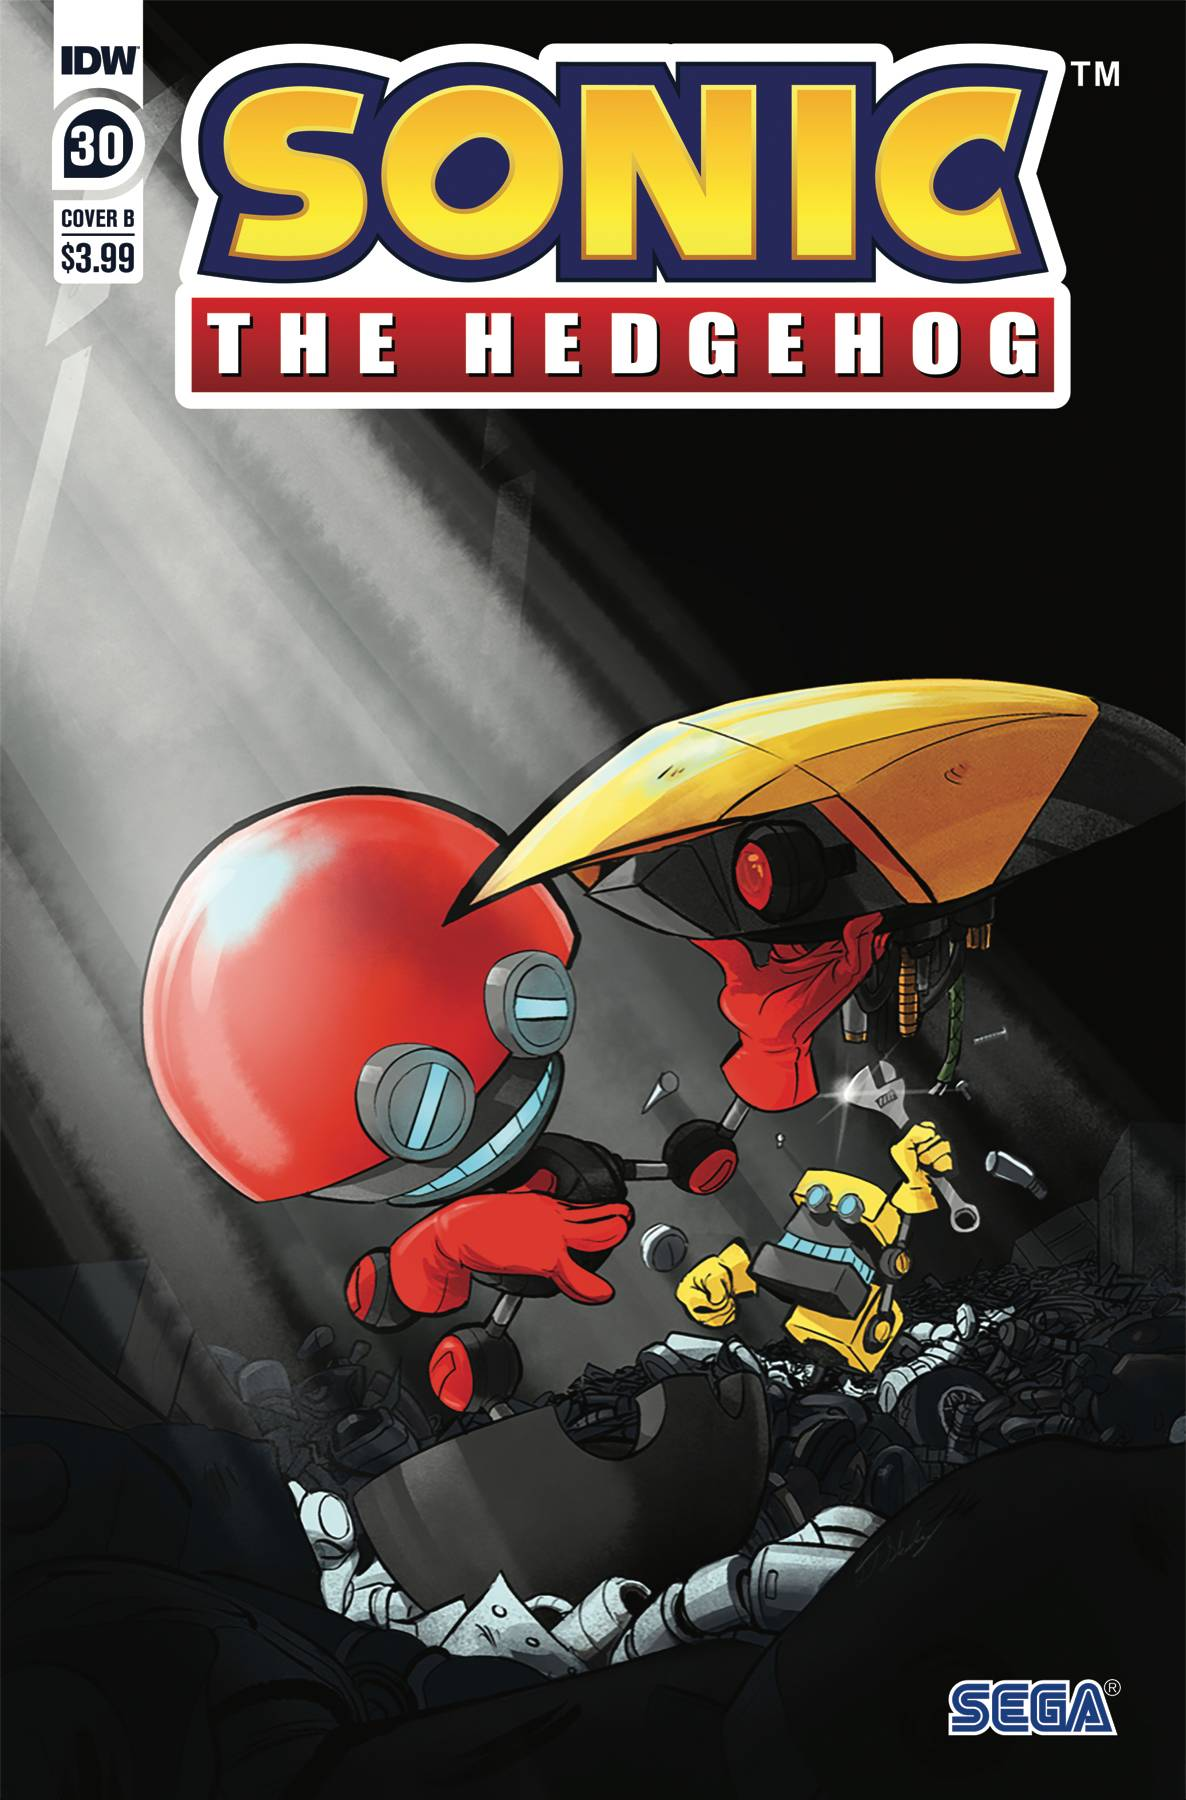 Sonic The Hedgehog Cover B Skelly